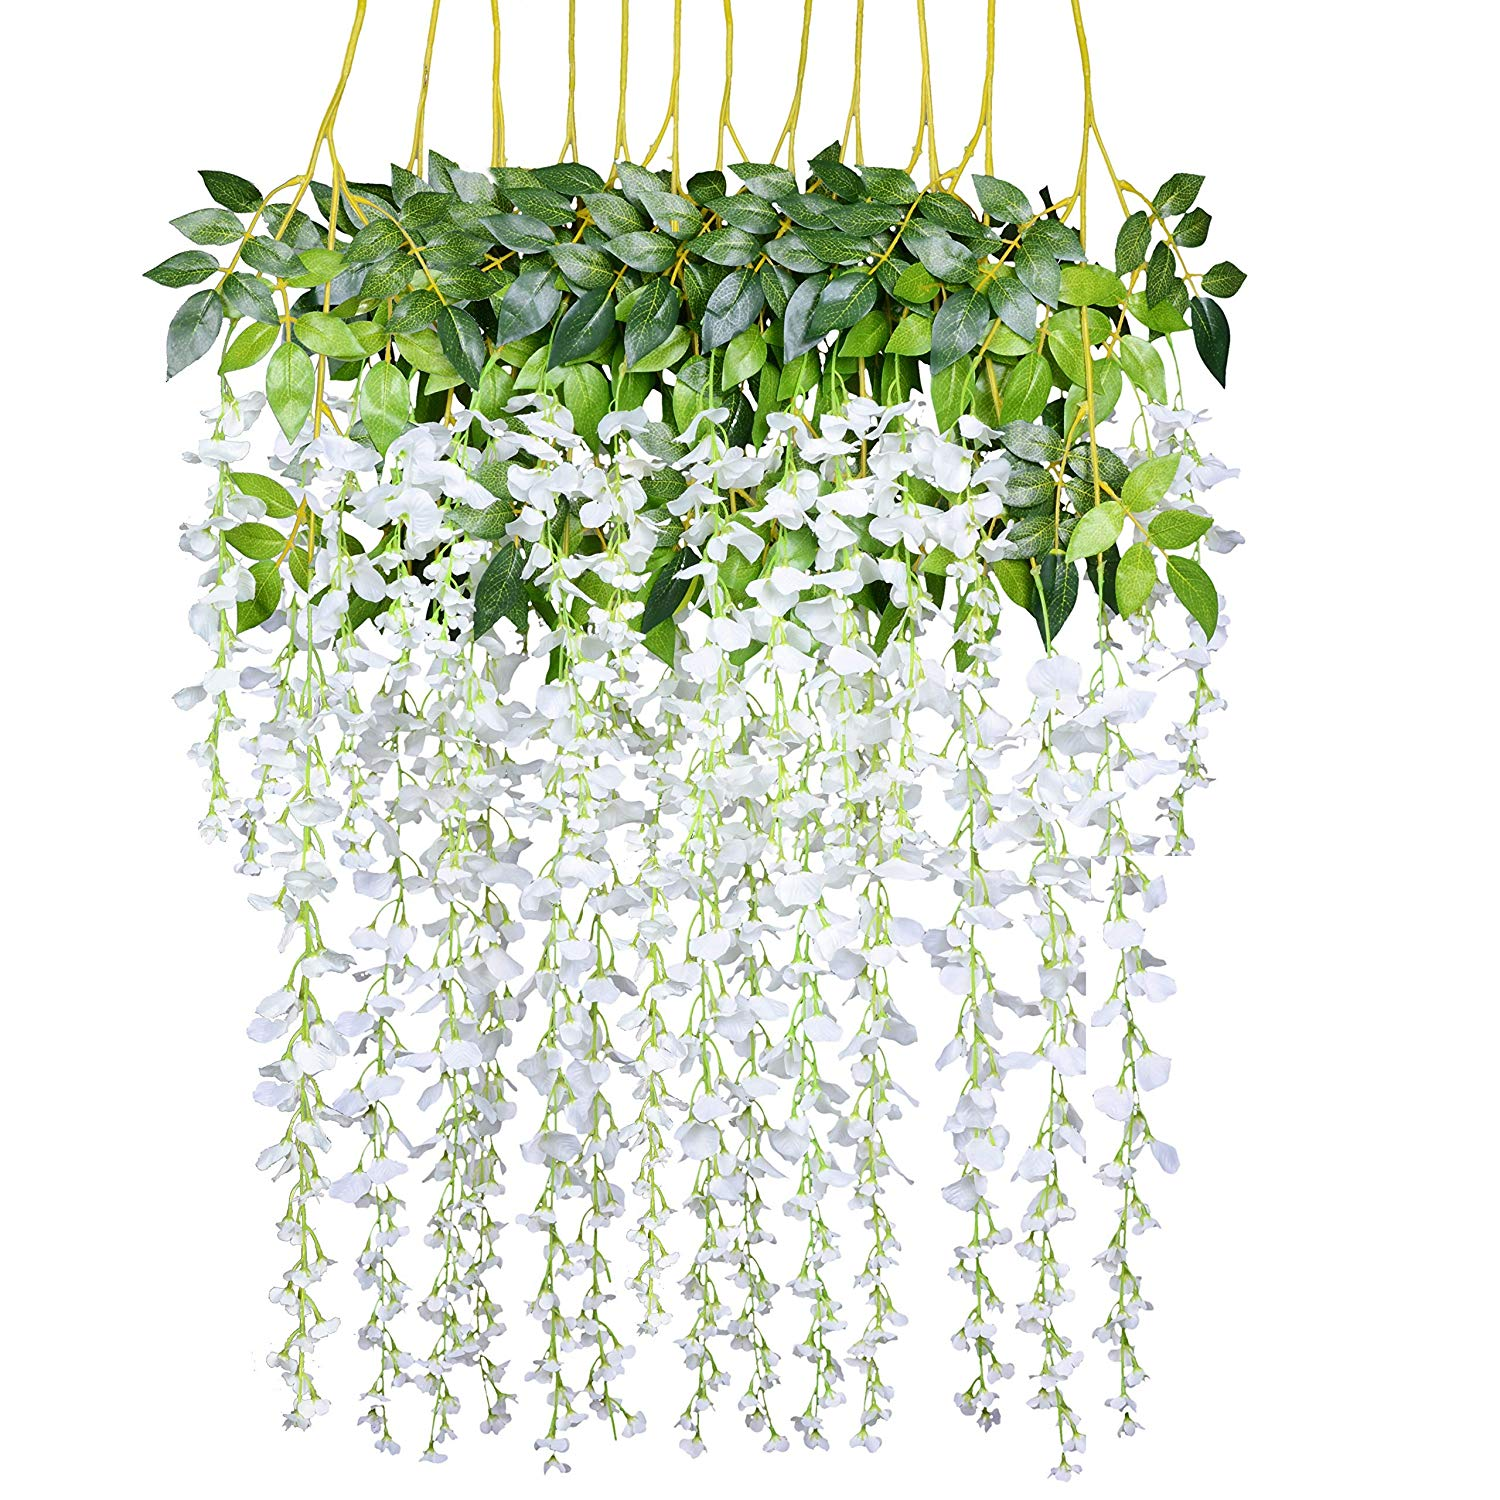 Coolmade 12 Pack 3.6 Feet/Piece Artificial Fake Wisteria Vine Ratta Hanging Garland Silk Flowers String Home Party Wedding Decor (White)